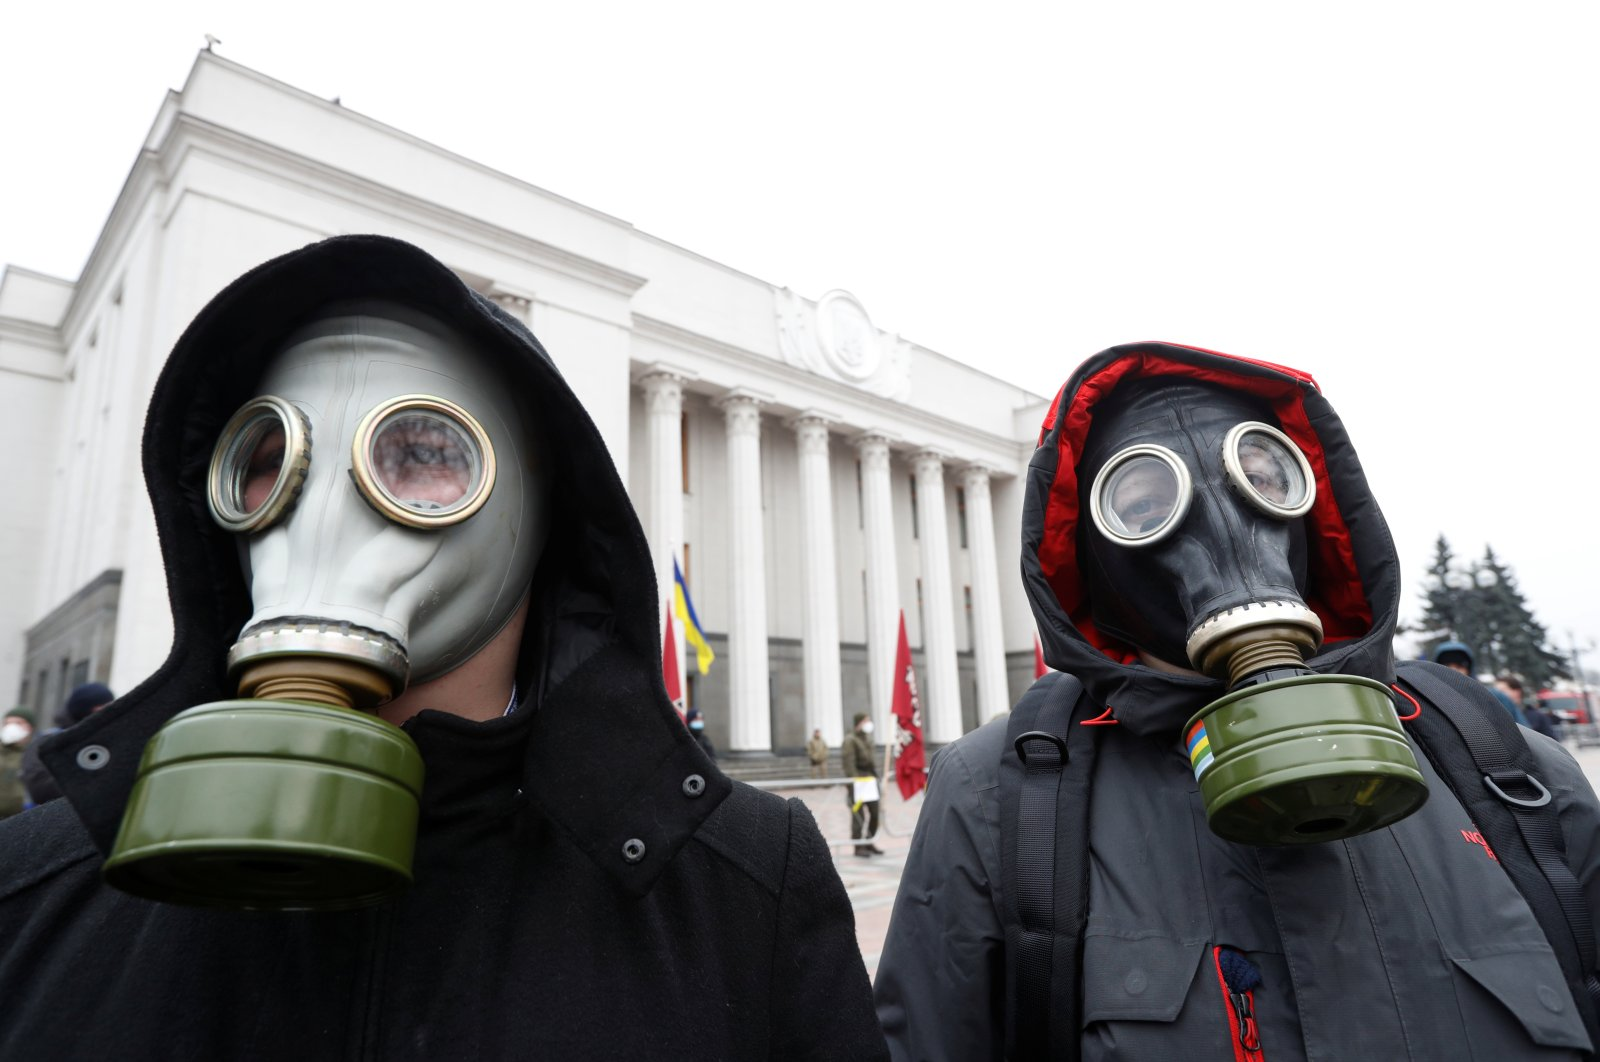 Activists wearing gas masks take part in a rally demanding to quarantine lawmakers amid coronavirus concerns, in front of the Ukrainian parliament building in Kiev, Ukraine March 17, 2020.  (REUTERS Photo)